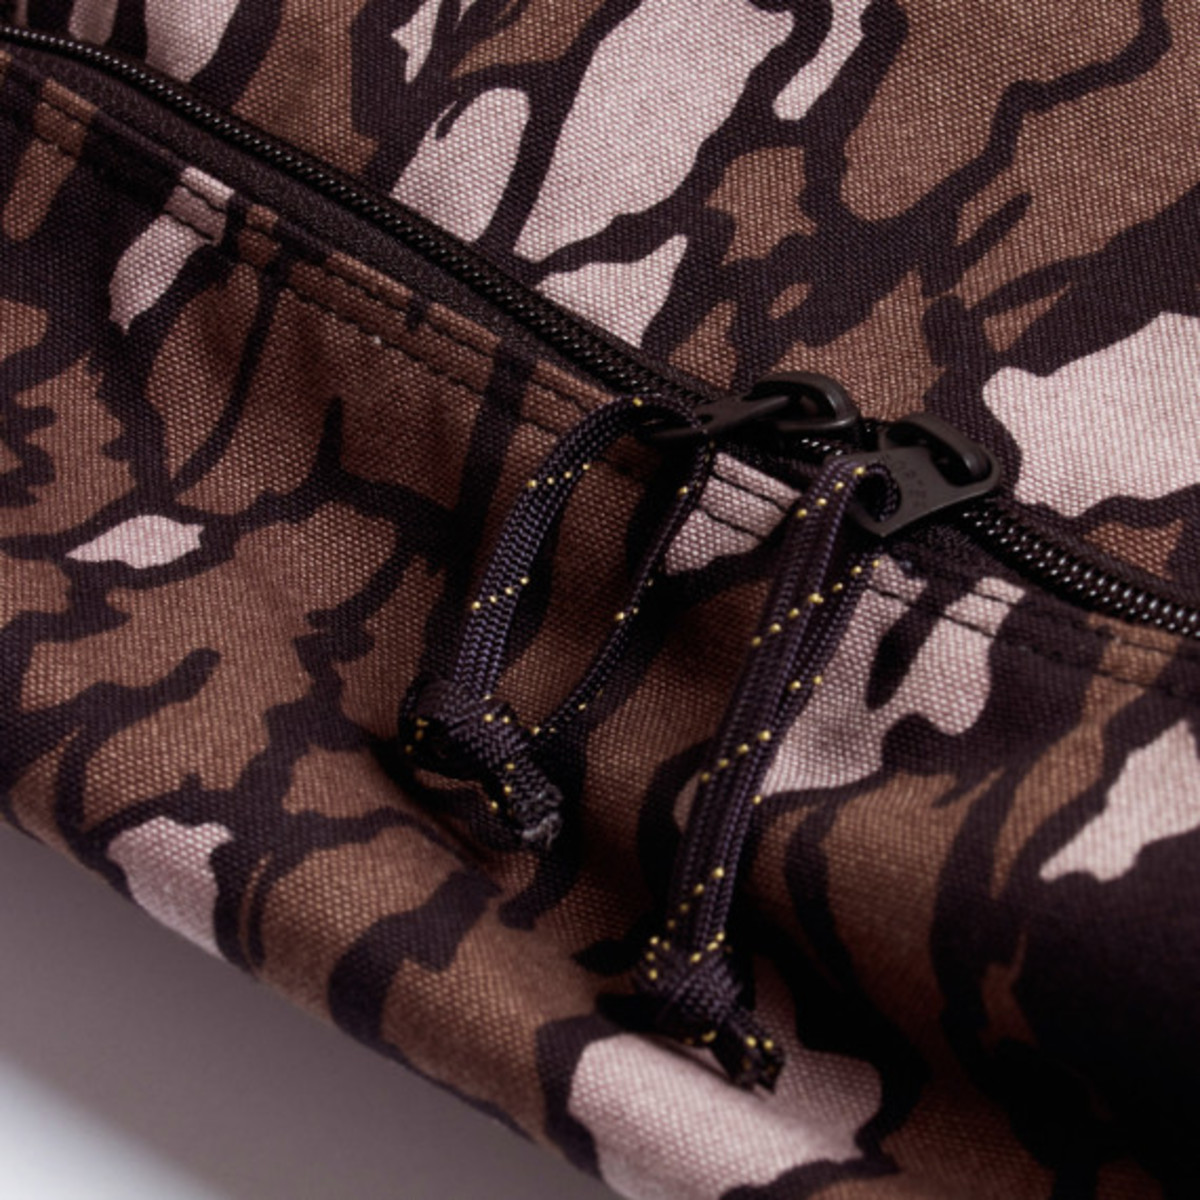 staple-x-porter-bags-holiday-2013-accessories-collection-11